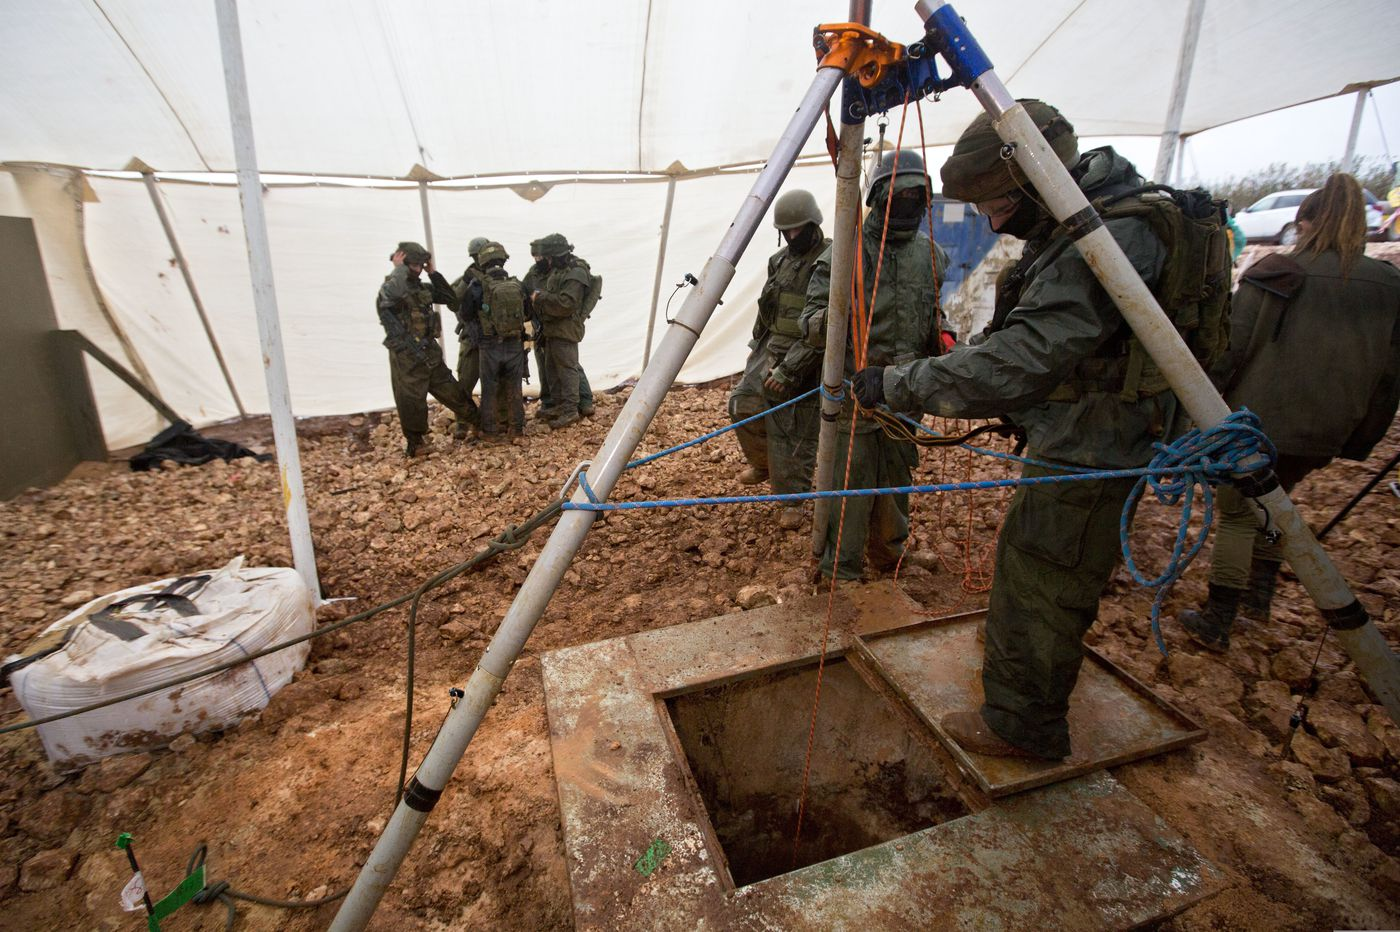 Israel urges UN to condemn Hezbollah over tunnels